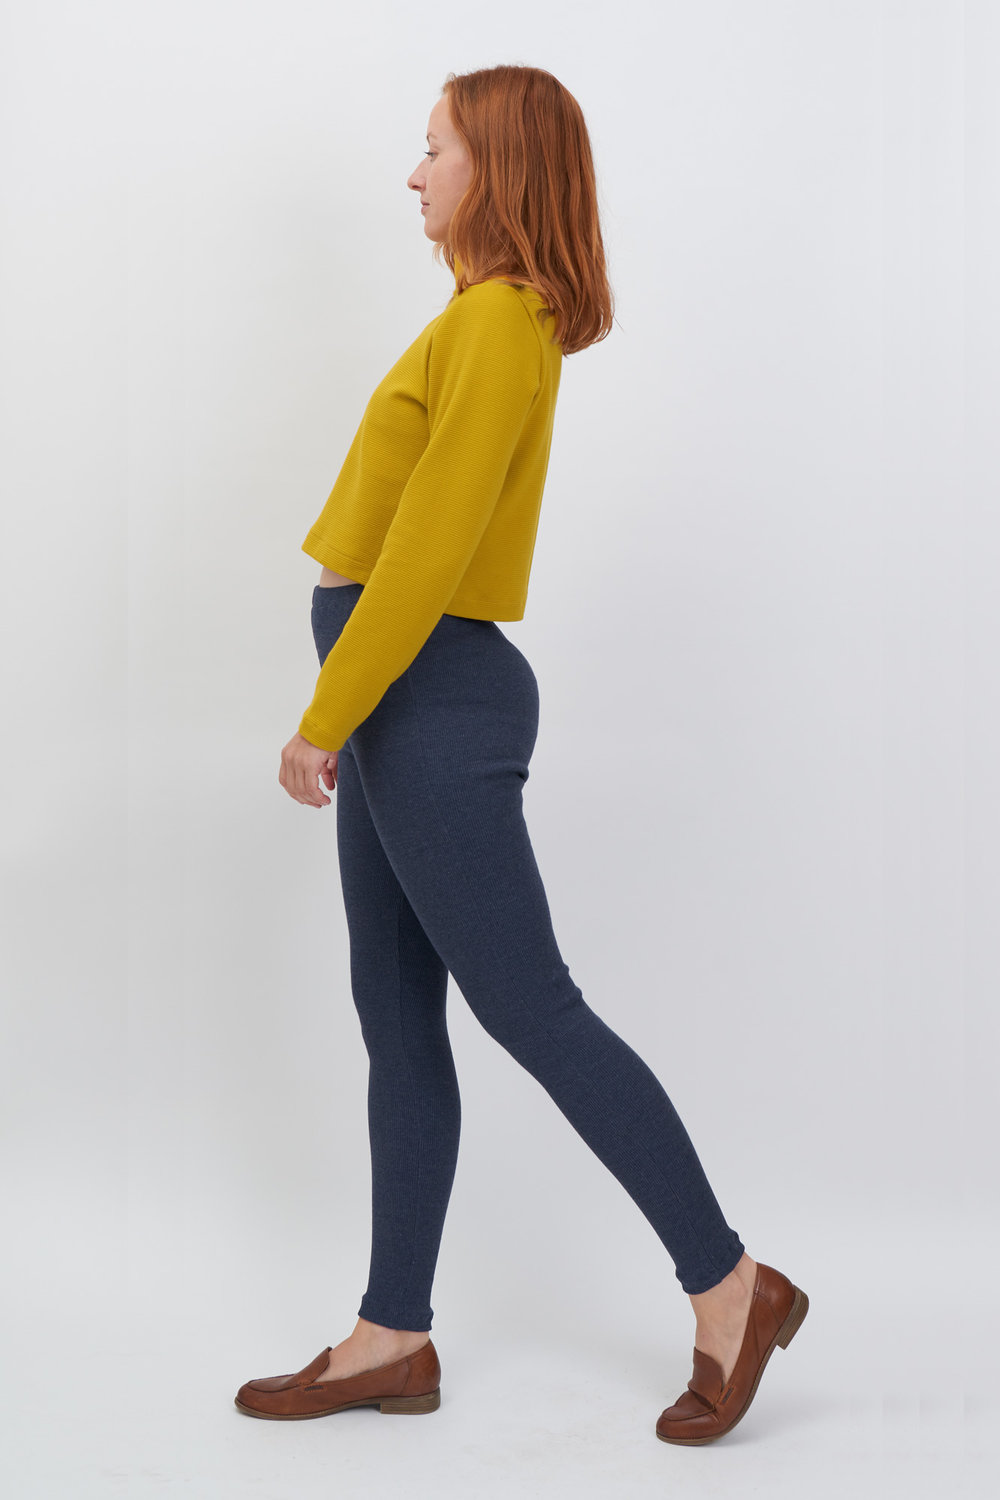 Leggings-blue-front.jpg